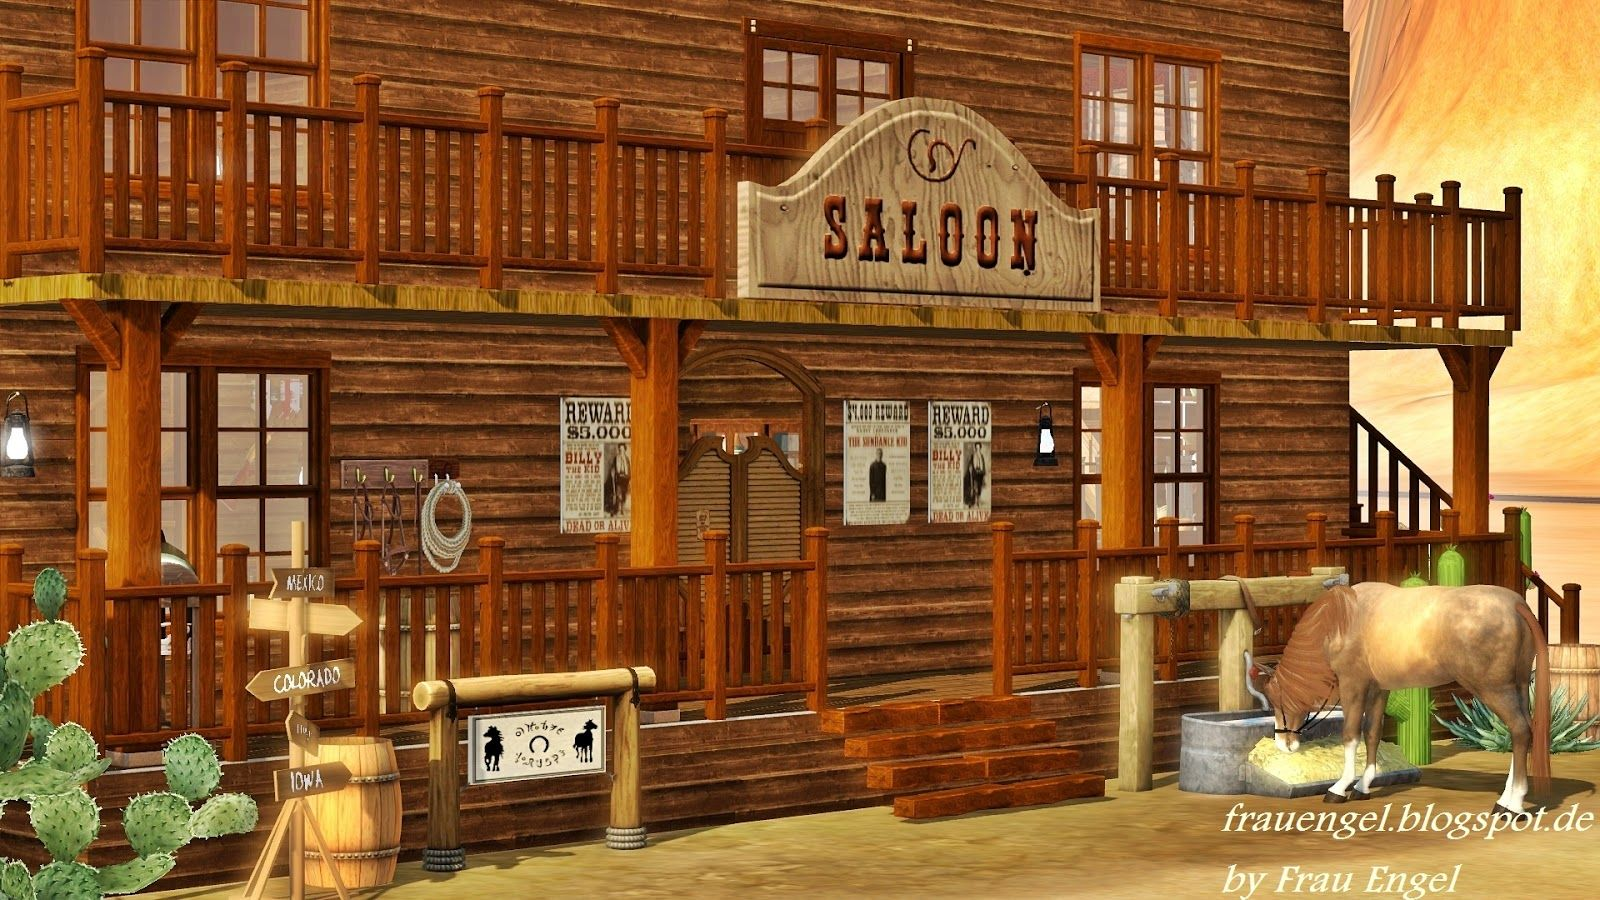 saloon entertainment world My Sims 3 Blog Saloon in the Wild